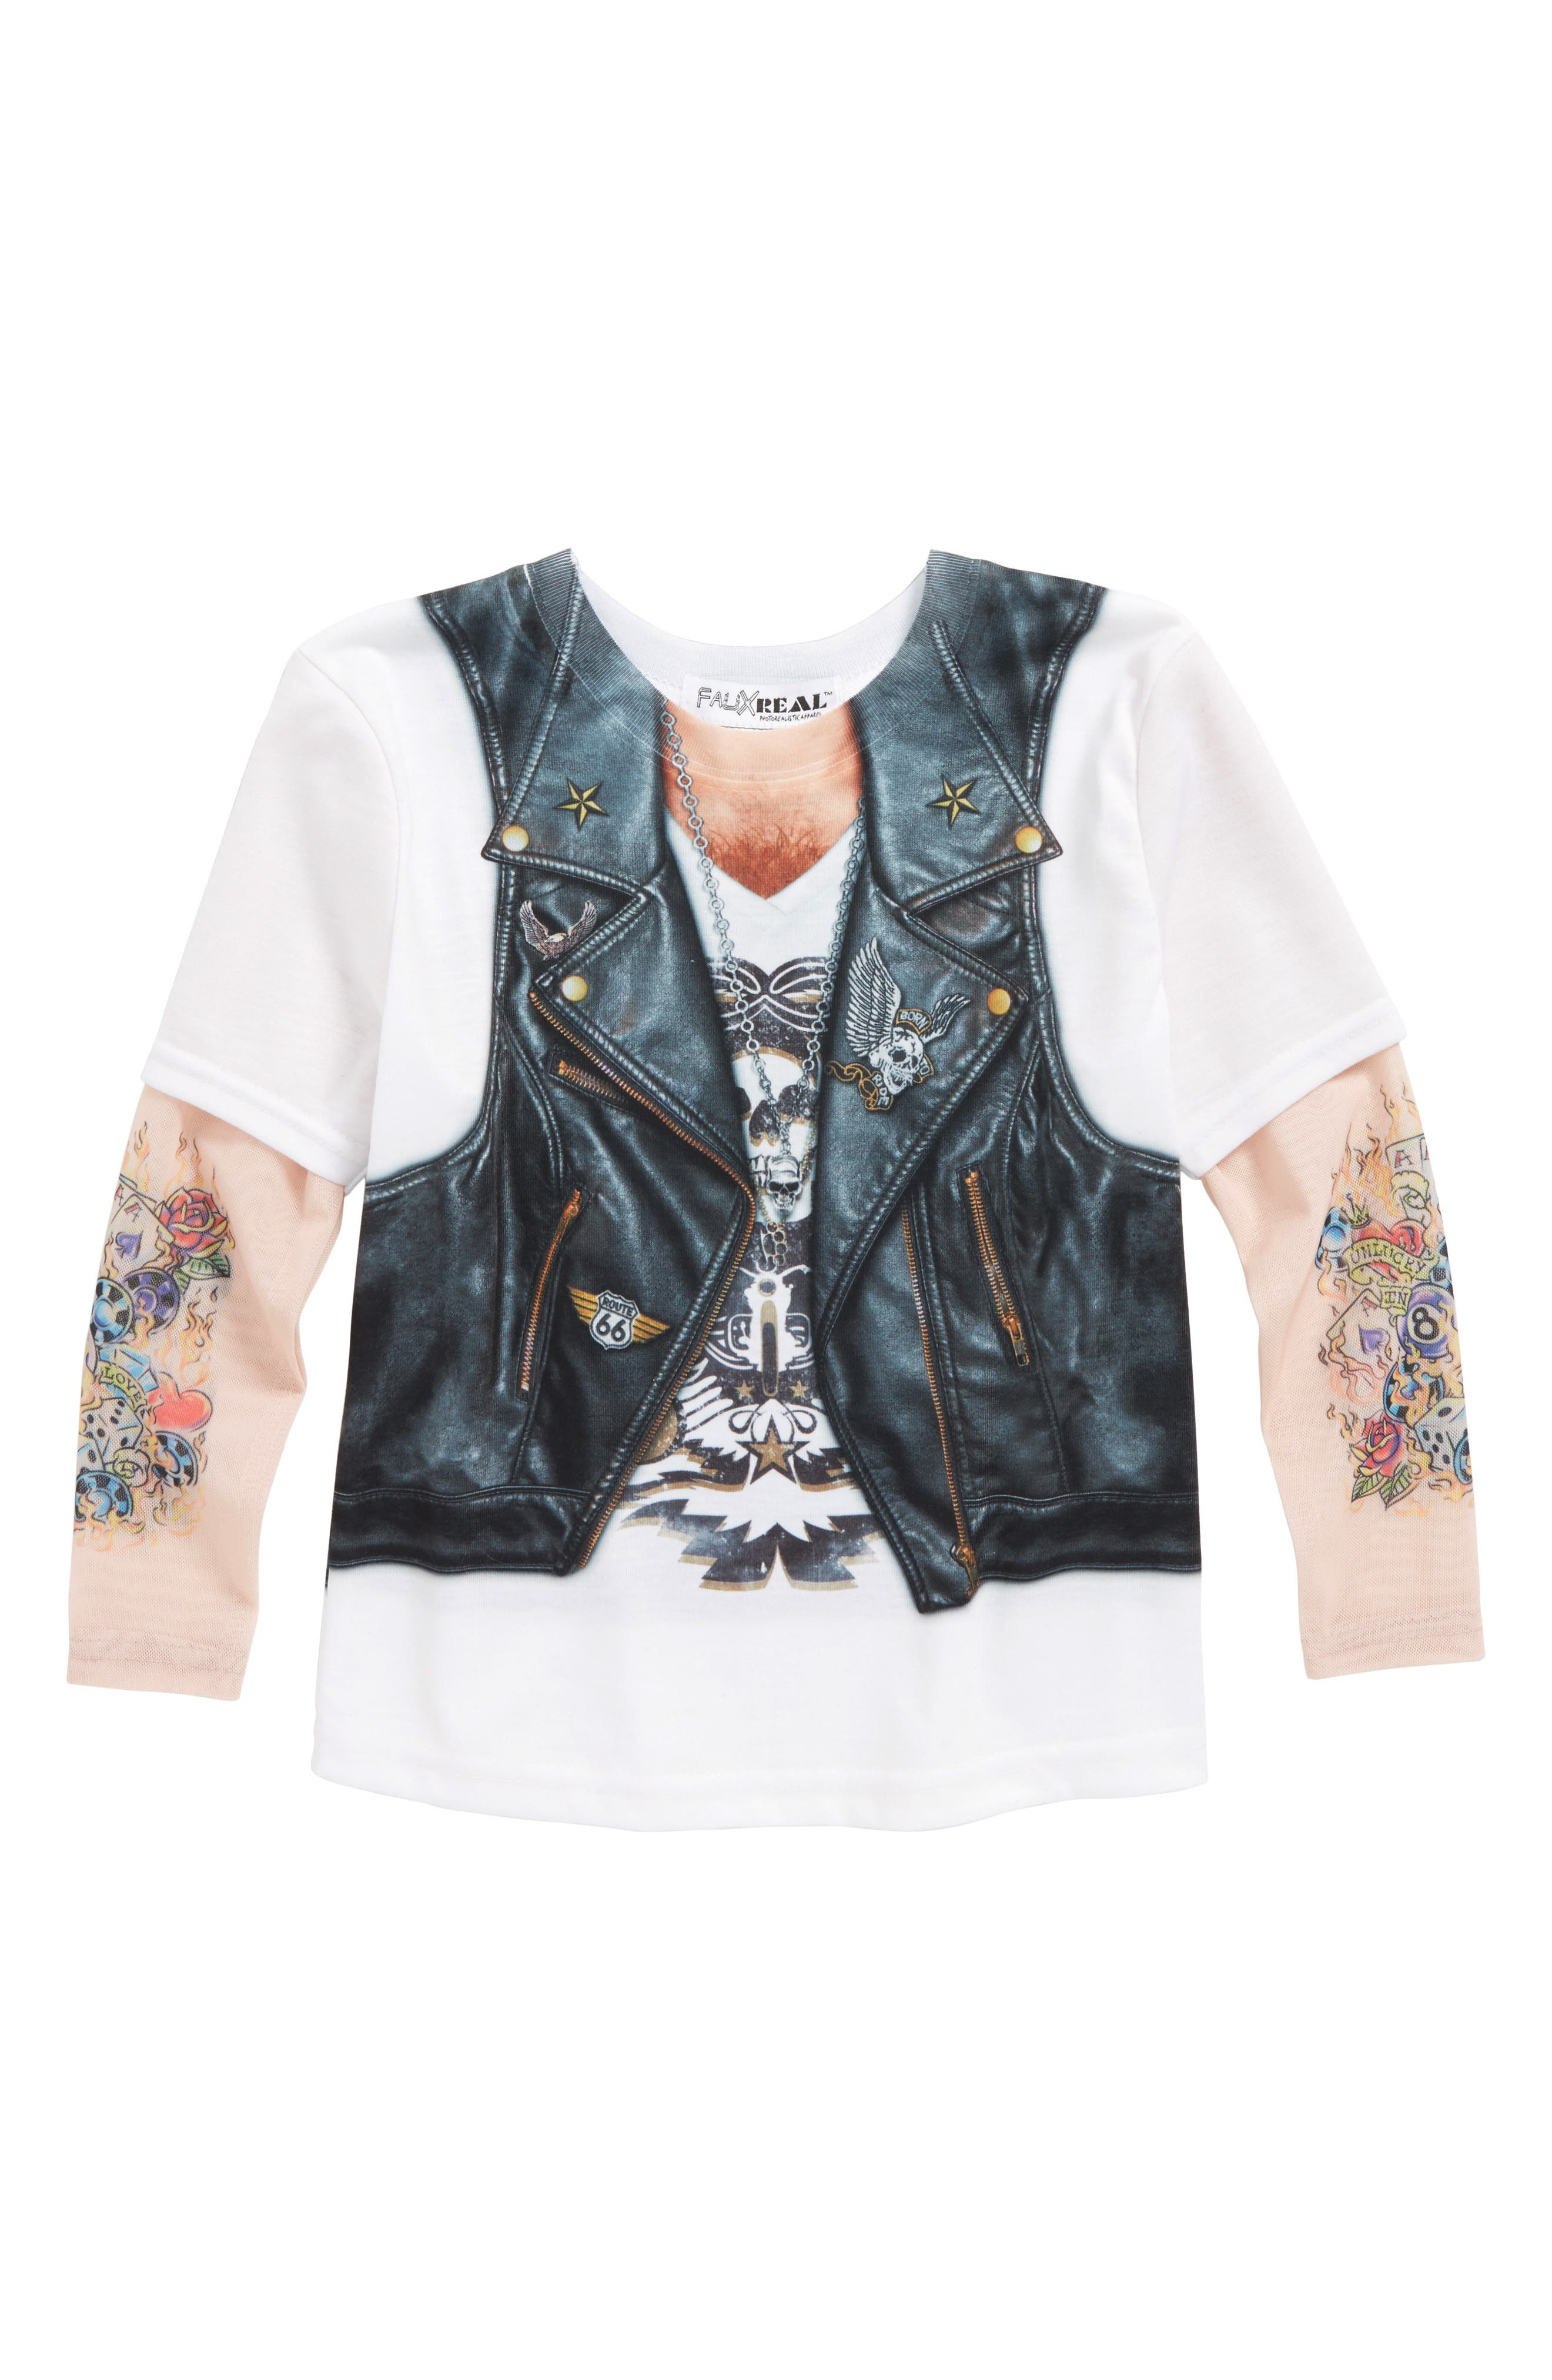 Alternate Image 1 Selected - Faux Real Biker Print T-Shirt with Tattoo Print Sleeves (Toddler Boys)